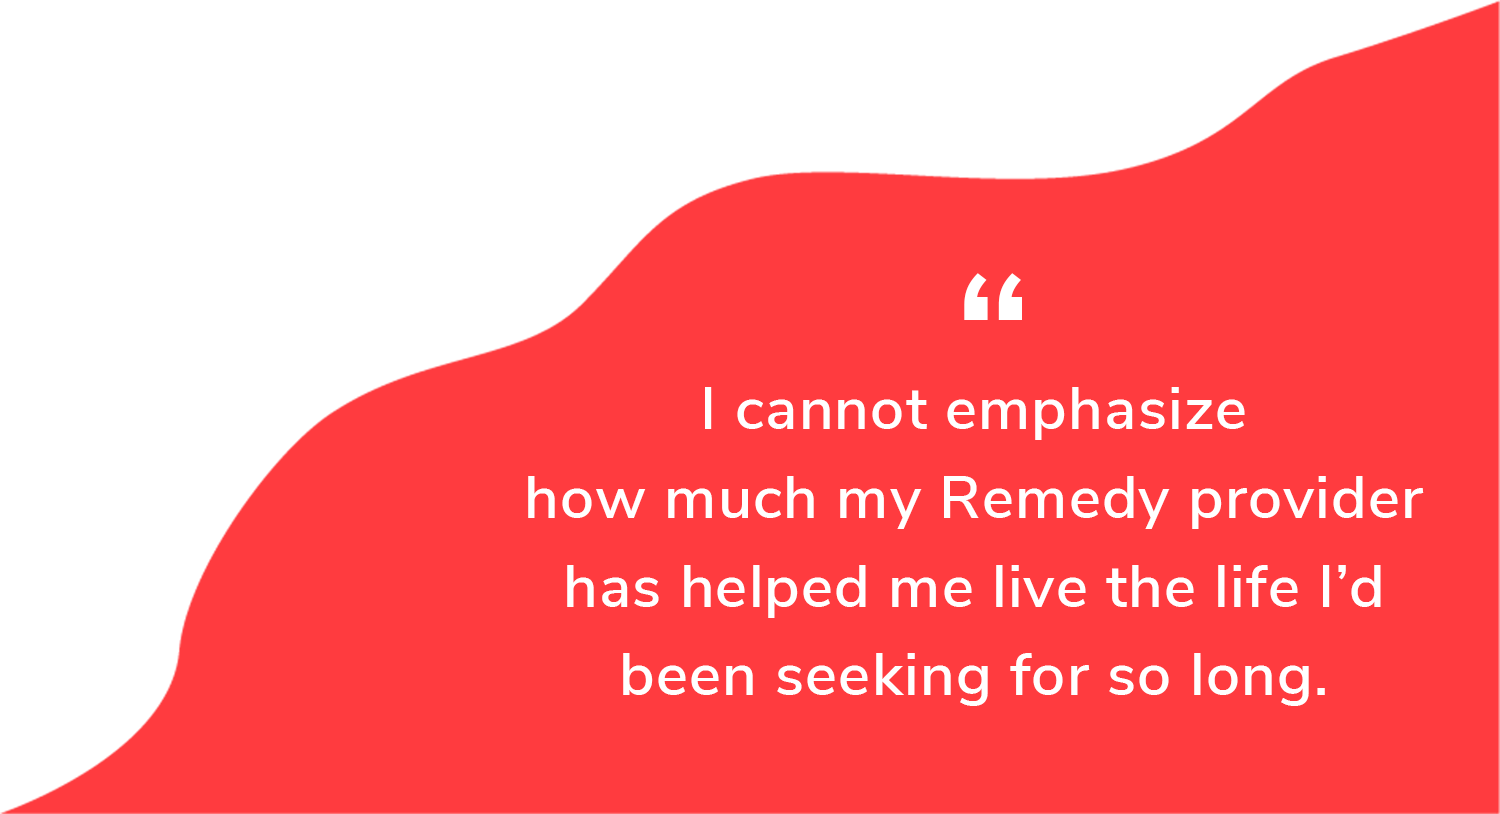 """""""I cannot emphasize how much my Remedy provider has helped me live the life I'd been seeking for so long"""""""